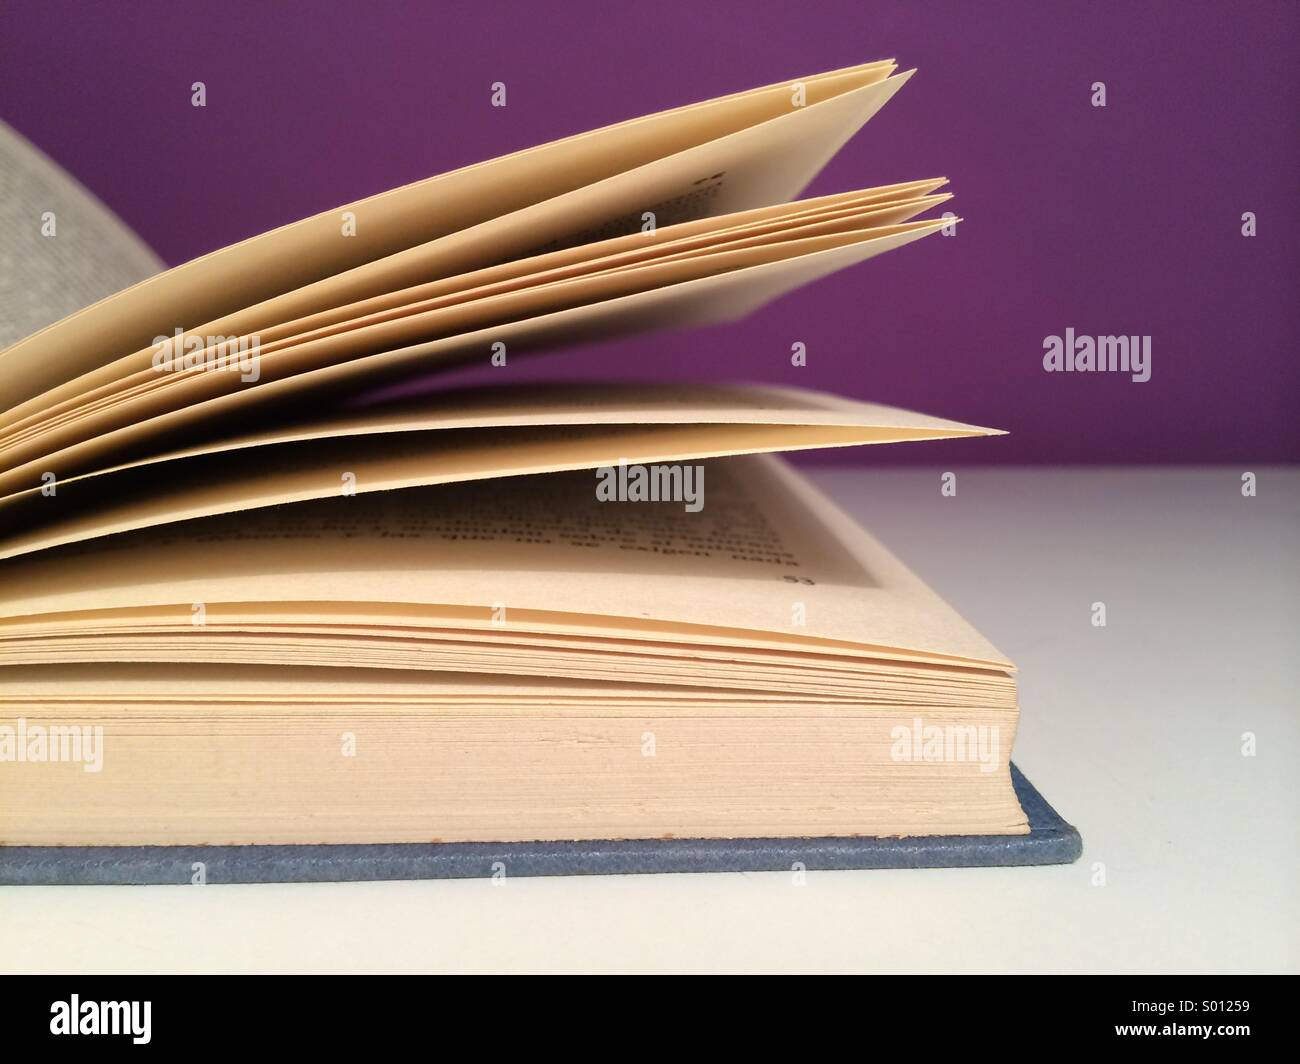 Abrir Libros Book Imágenes De Stock And Book Fotos De Stock Alamy